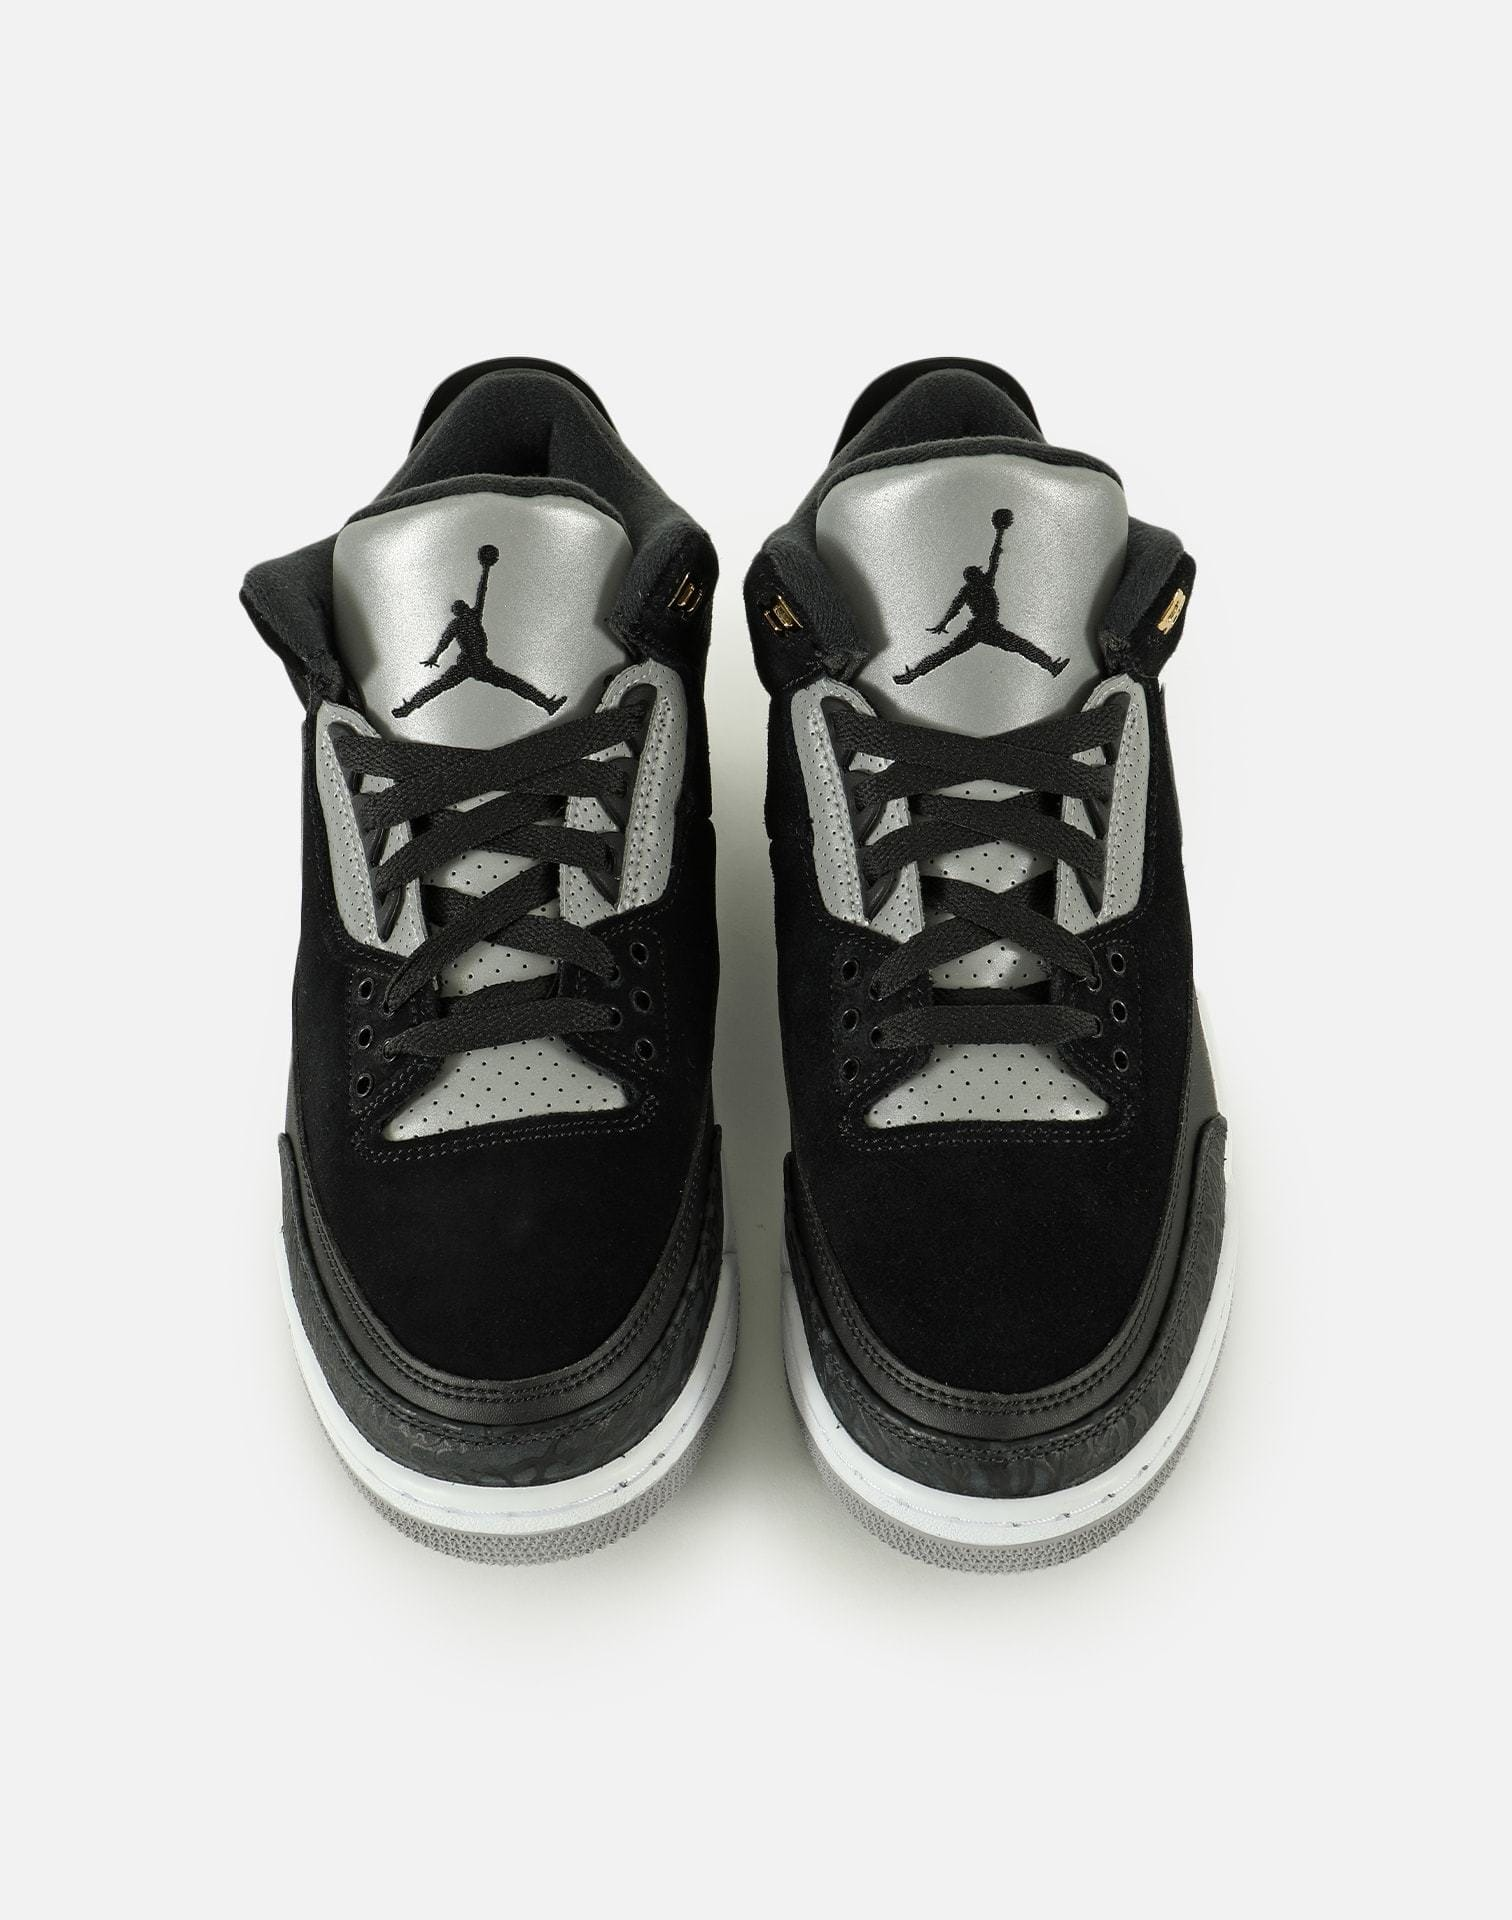 Jordan Men's Air Jordan Retro 3 Tinker 'Black Cement'